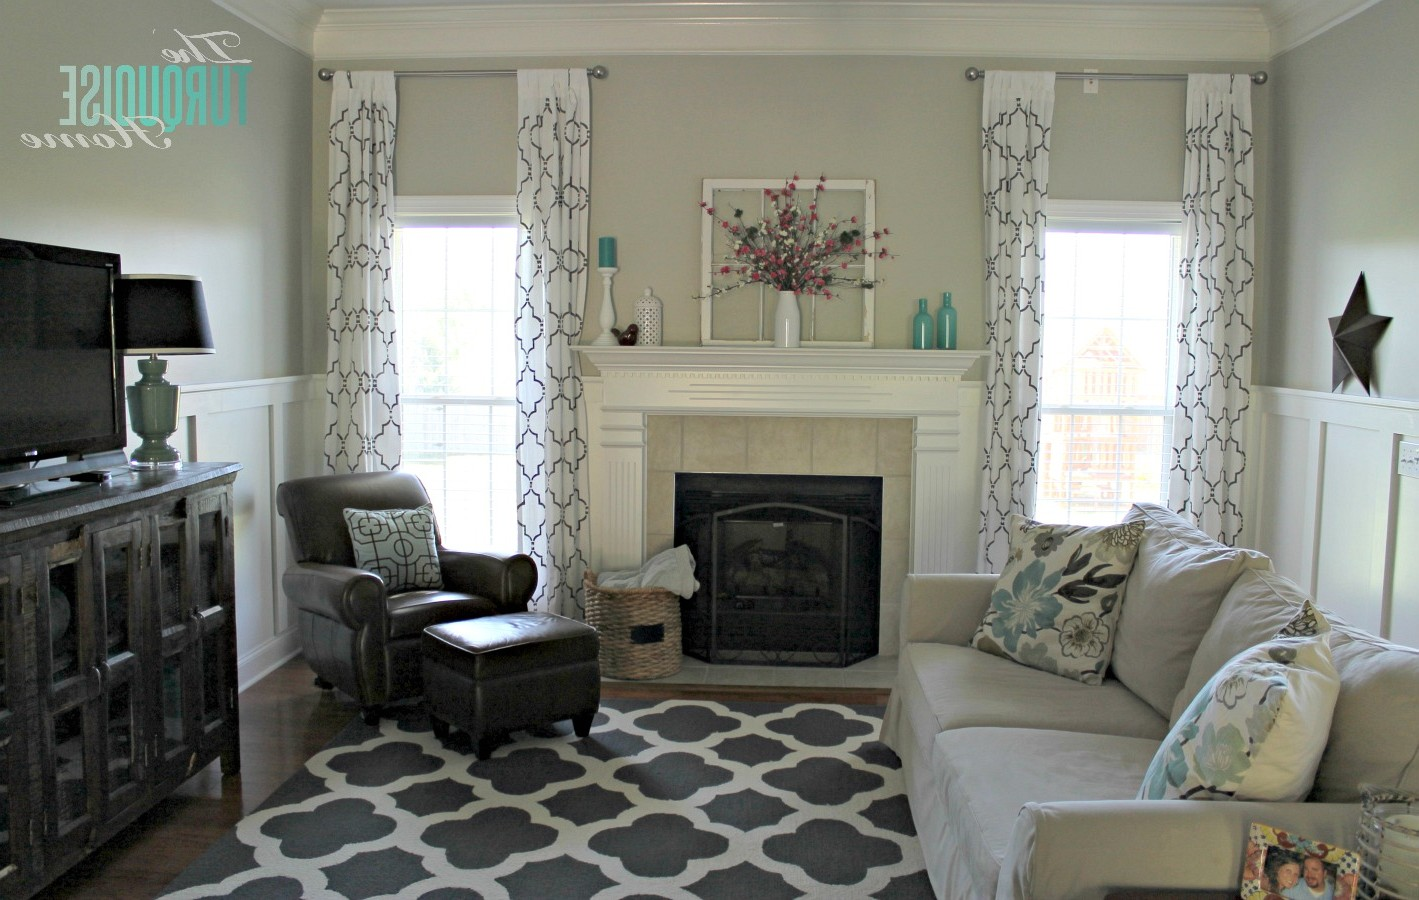 Pottery Barn Living Room Design Today Will Help You To Enjoy The  Breathtaking Results.